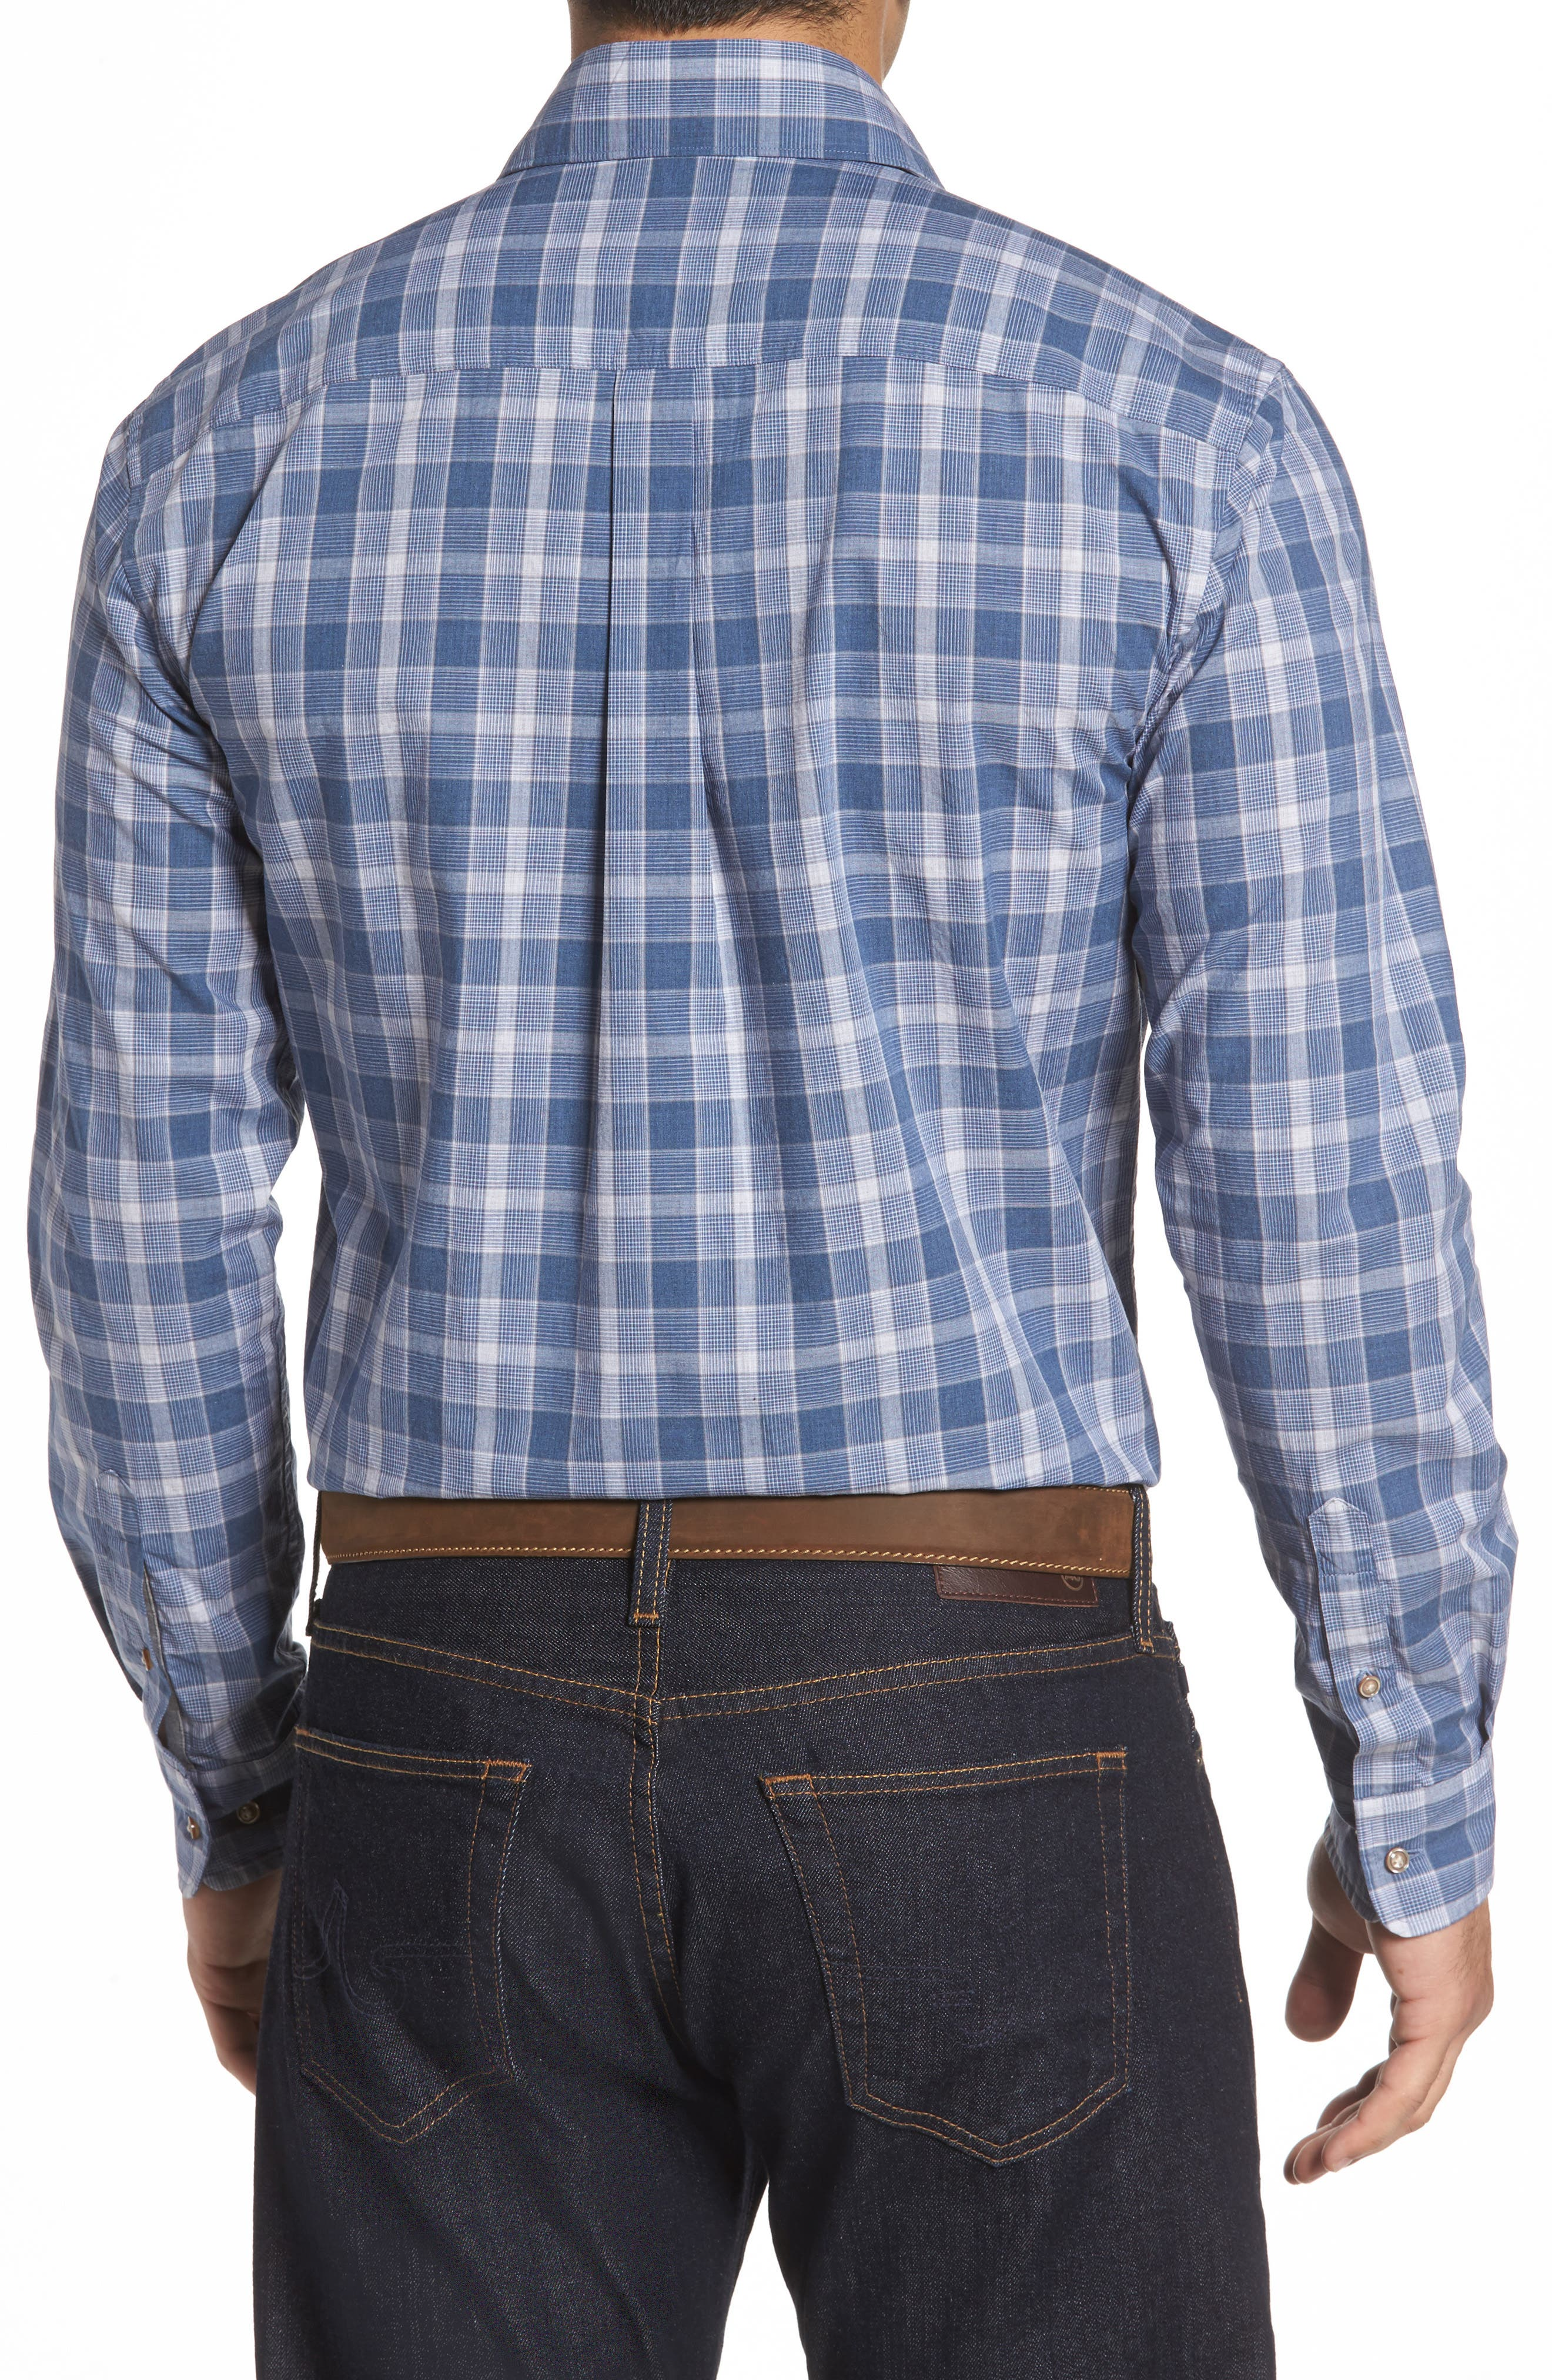 Highlands Classic Fit Plaid Sport Shirt,                             Alternate thumbnail 2, color,                             464